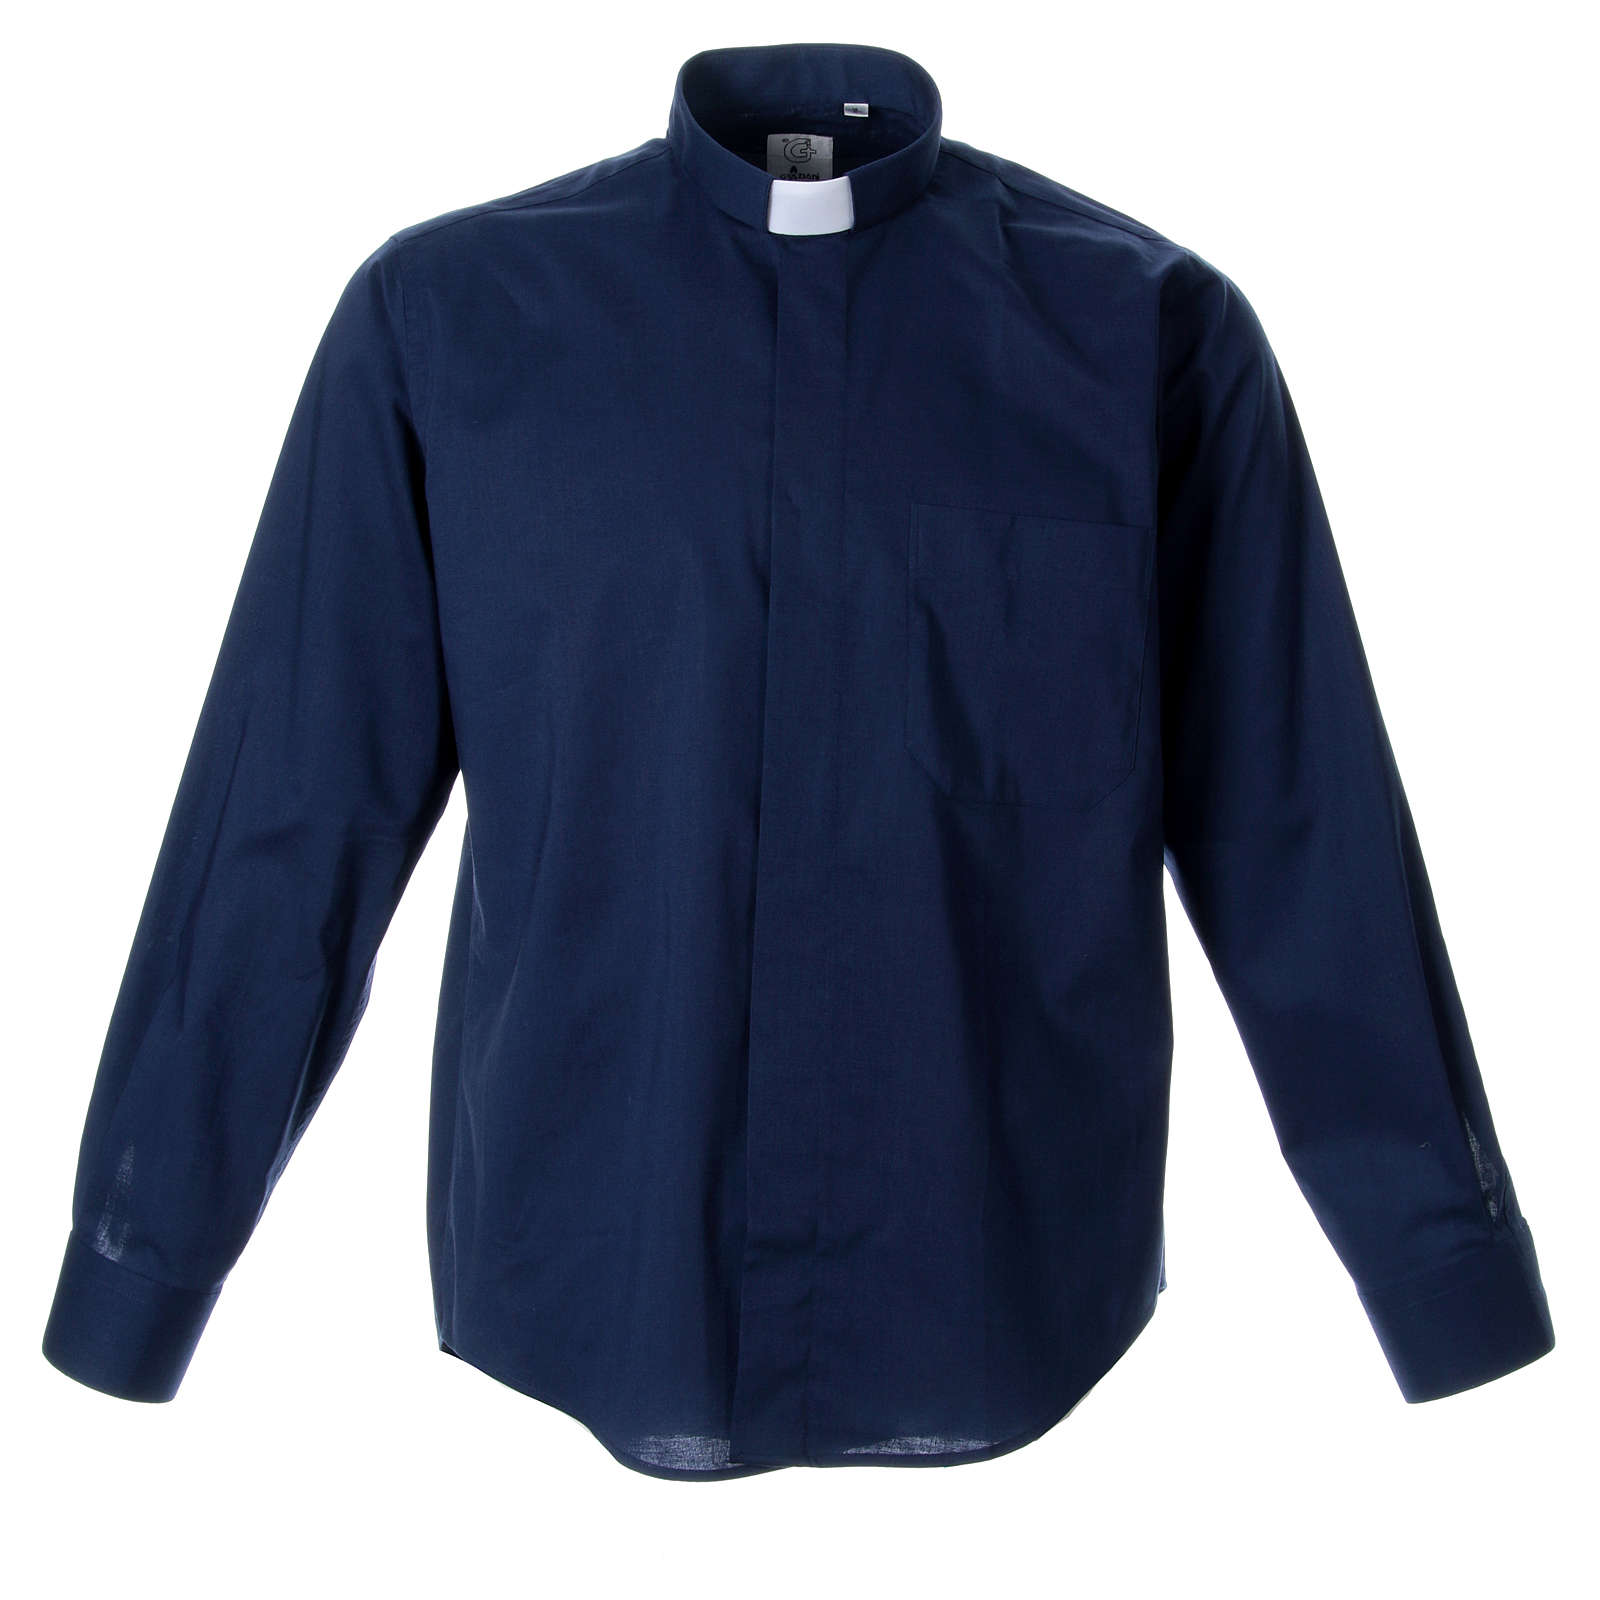 STOCK clergyman shirt with long sleeves in blend material blue 4